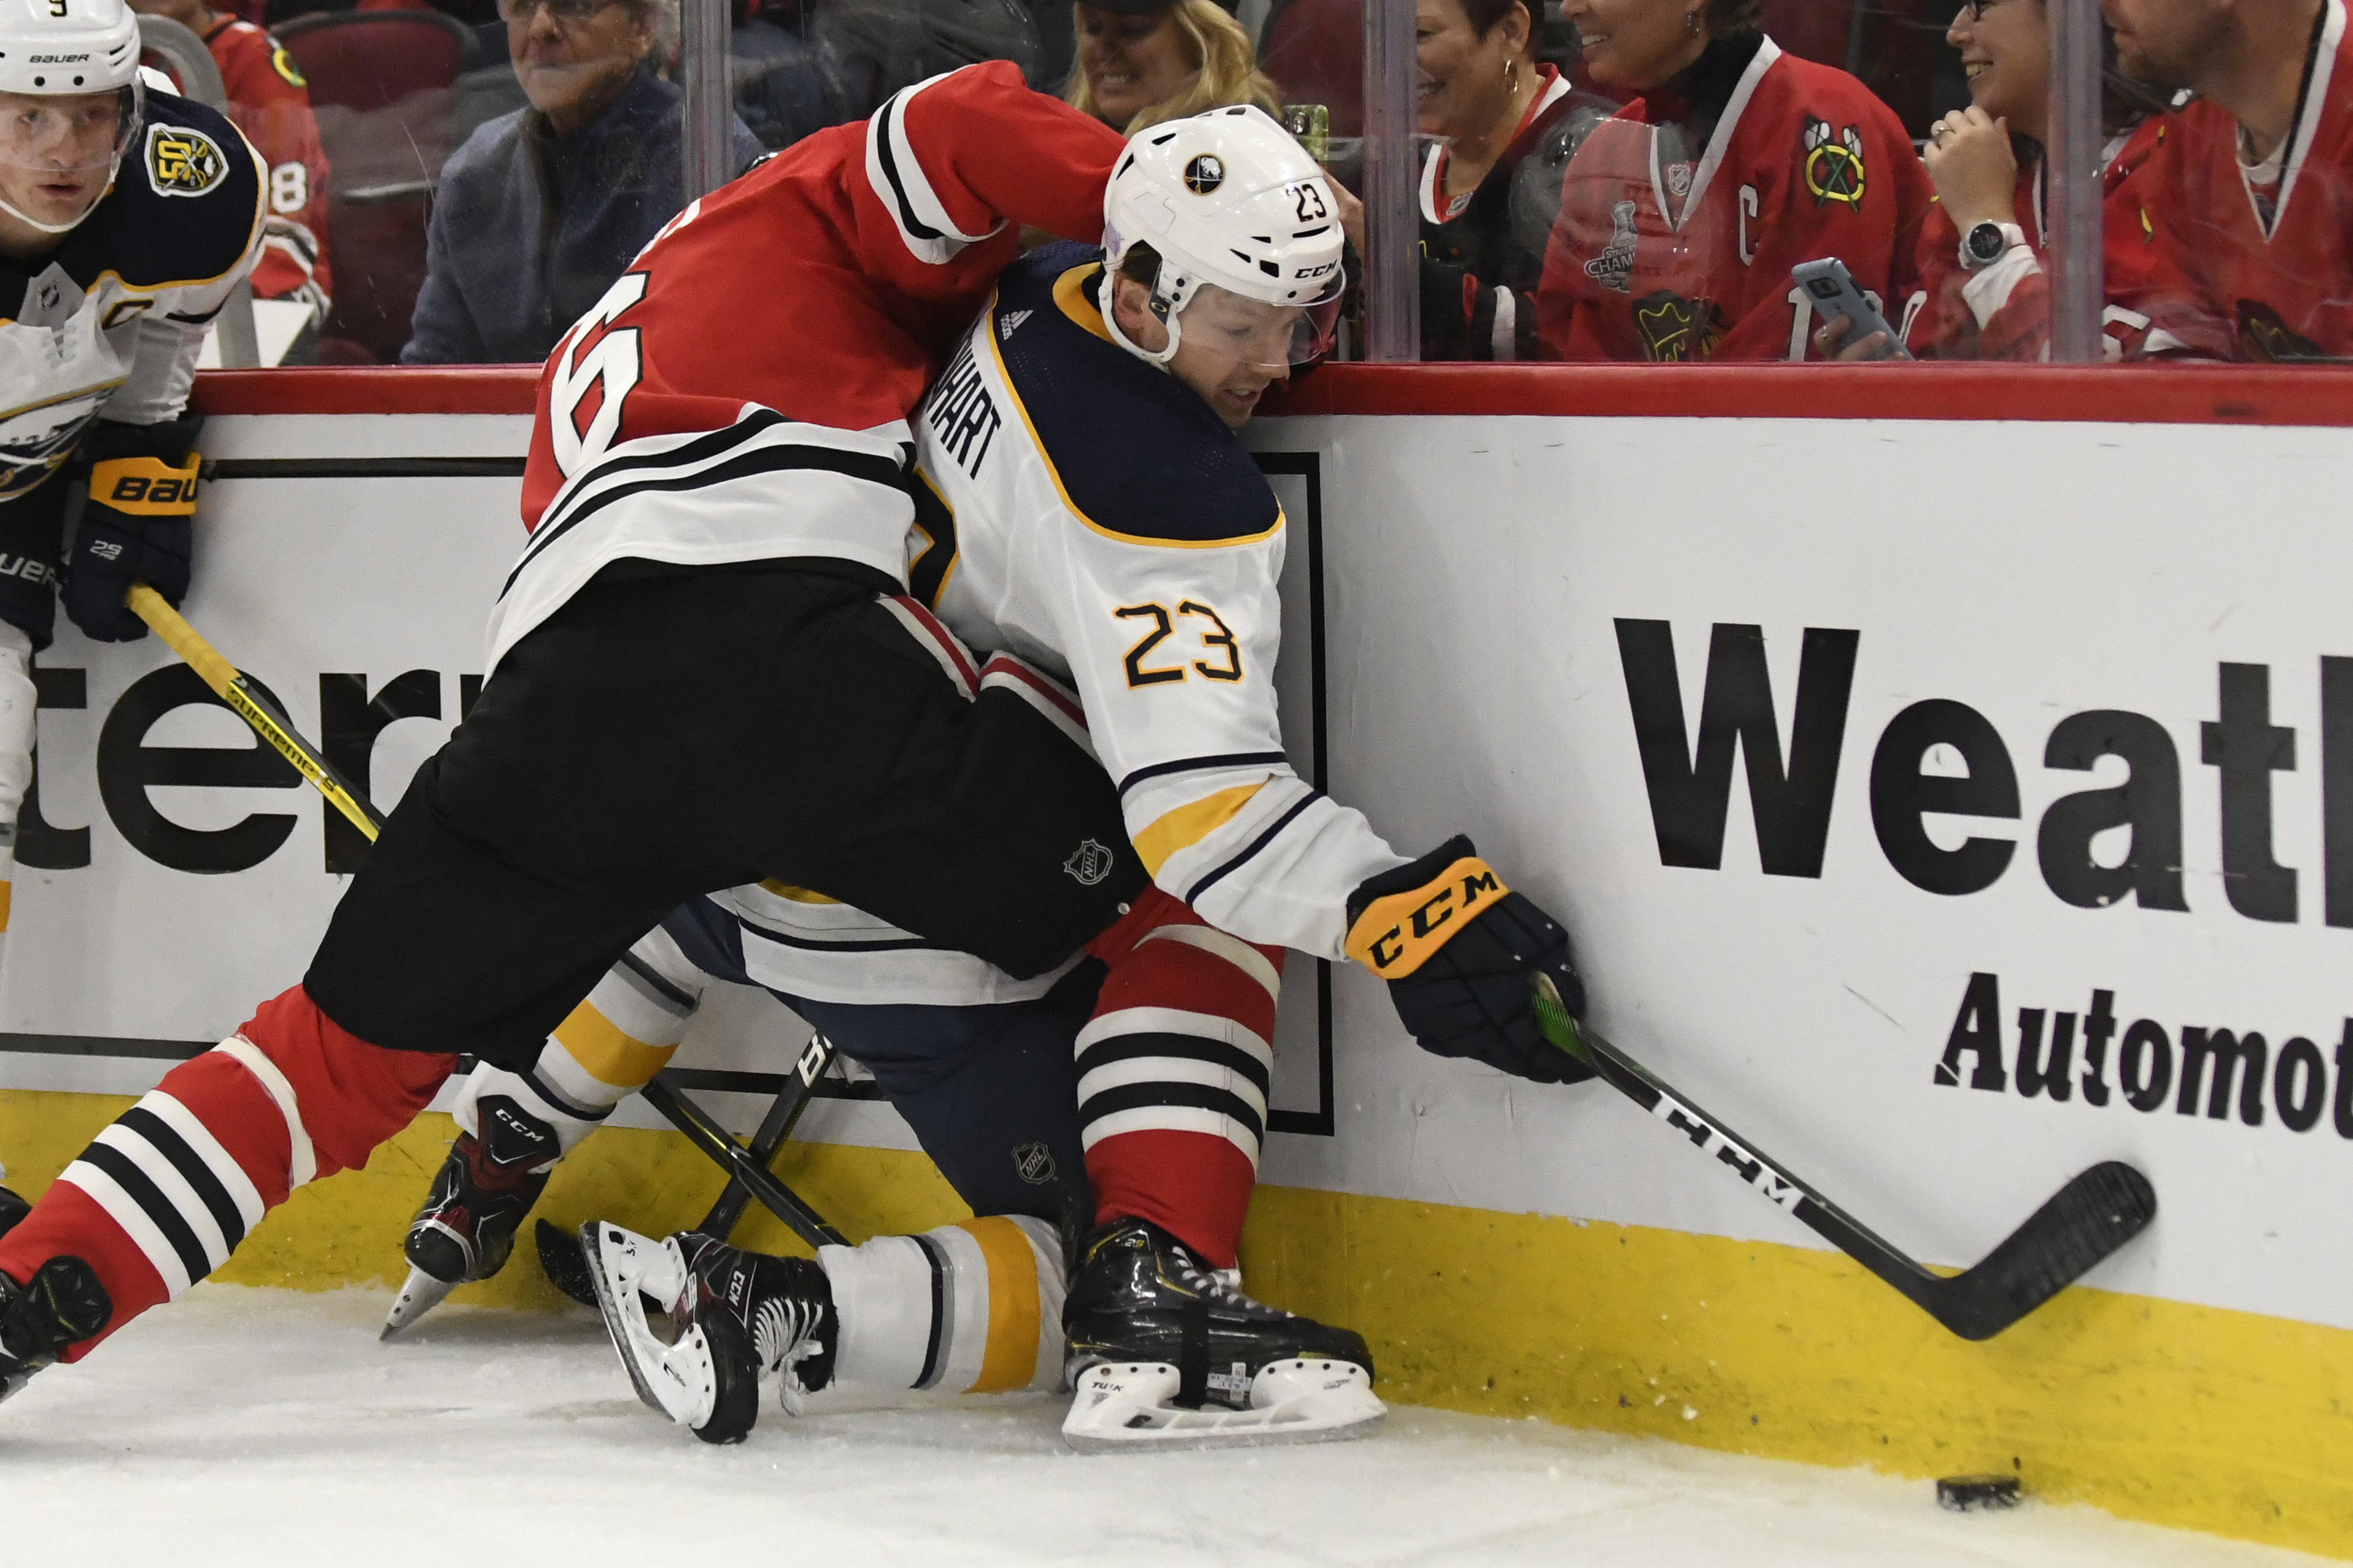 Olli Maatta will be asked to fill a defensive, physical role as he returns to the Blackhawks lineup.